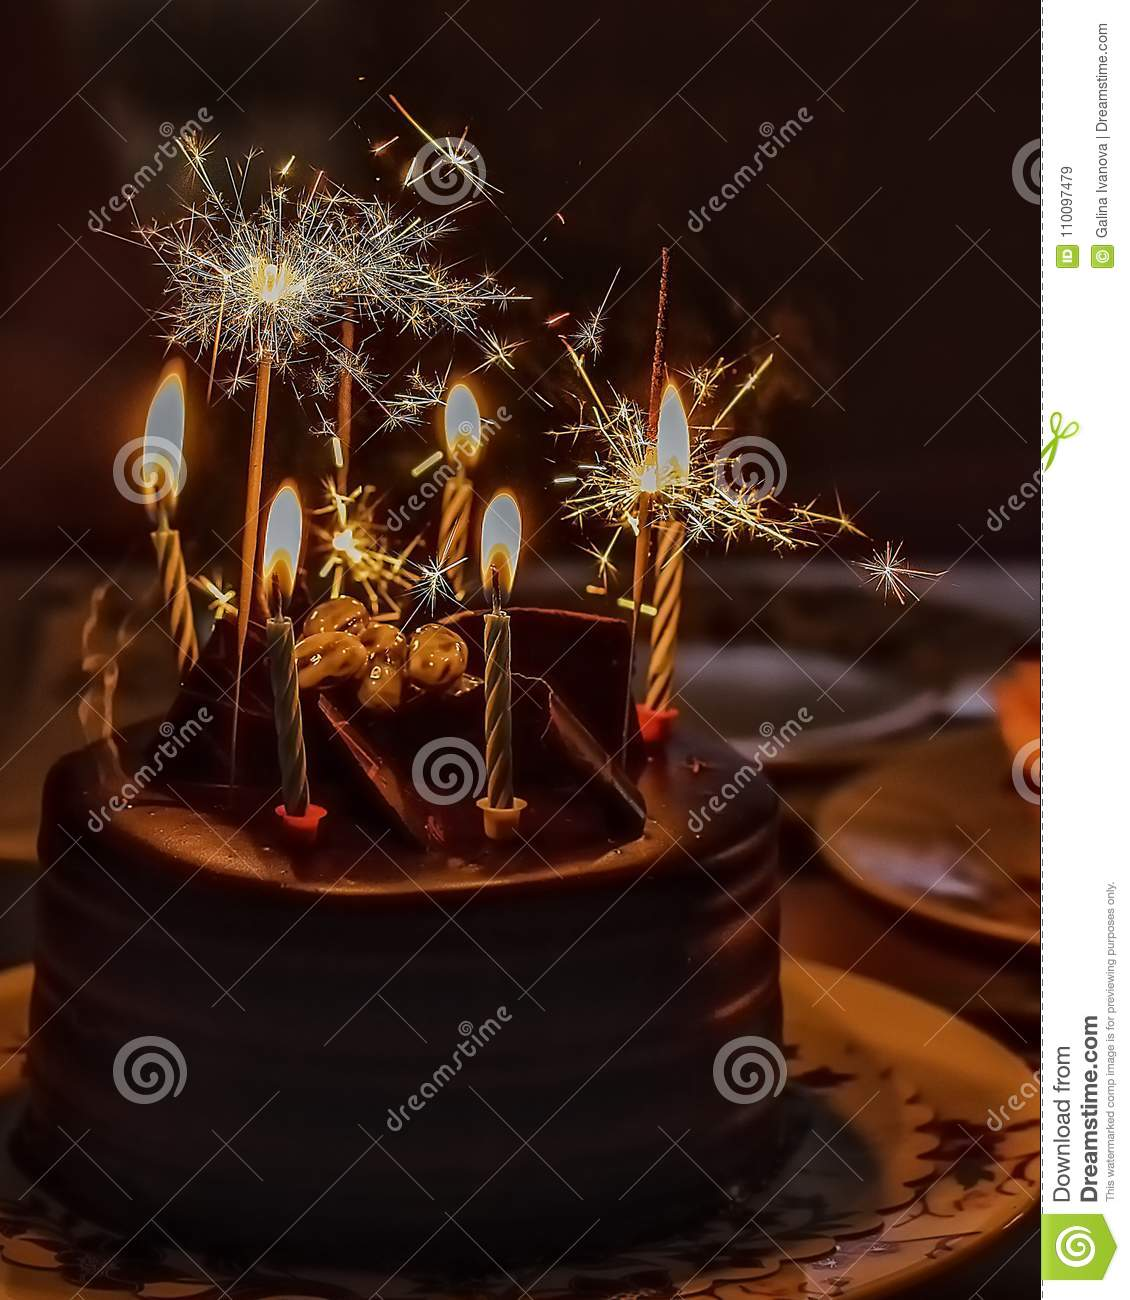 Outstanding Chocolate Cake With Candles And Sparkling Light Stock Image Funny Birthday Cards Online Alyptdamsfinfo